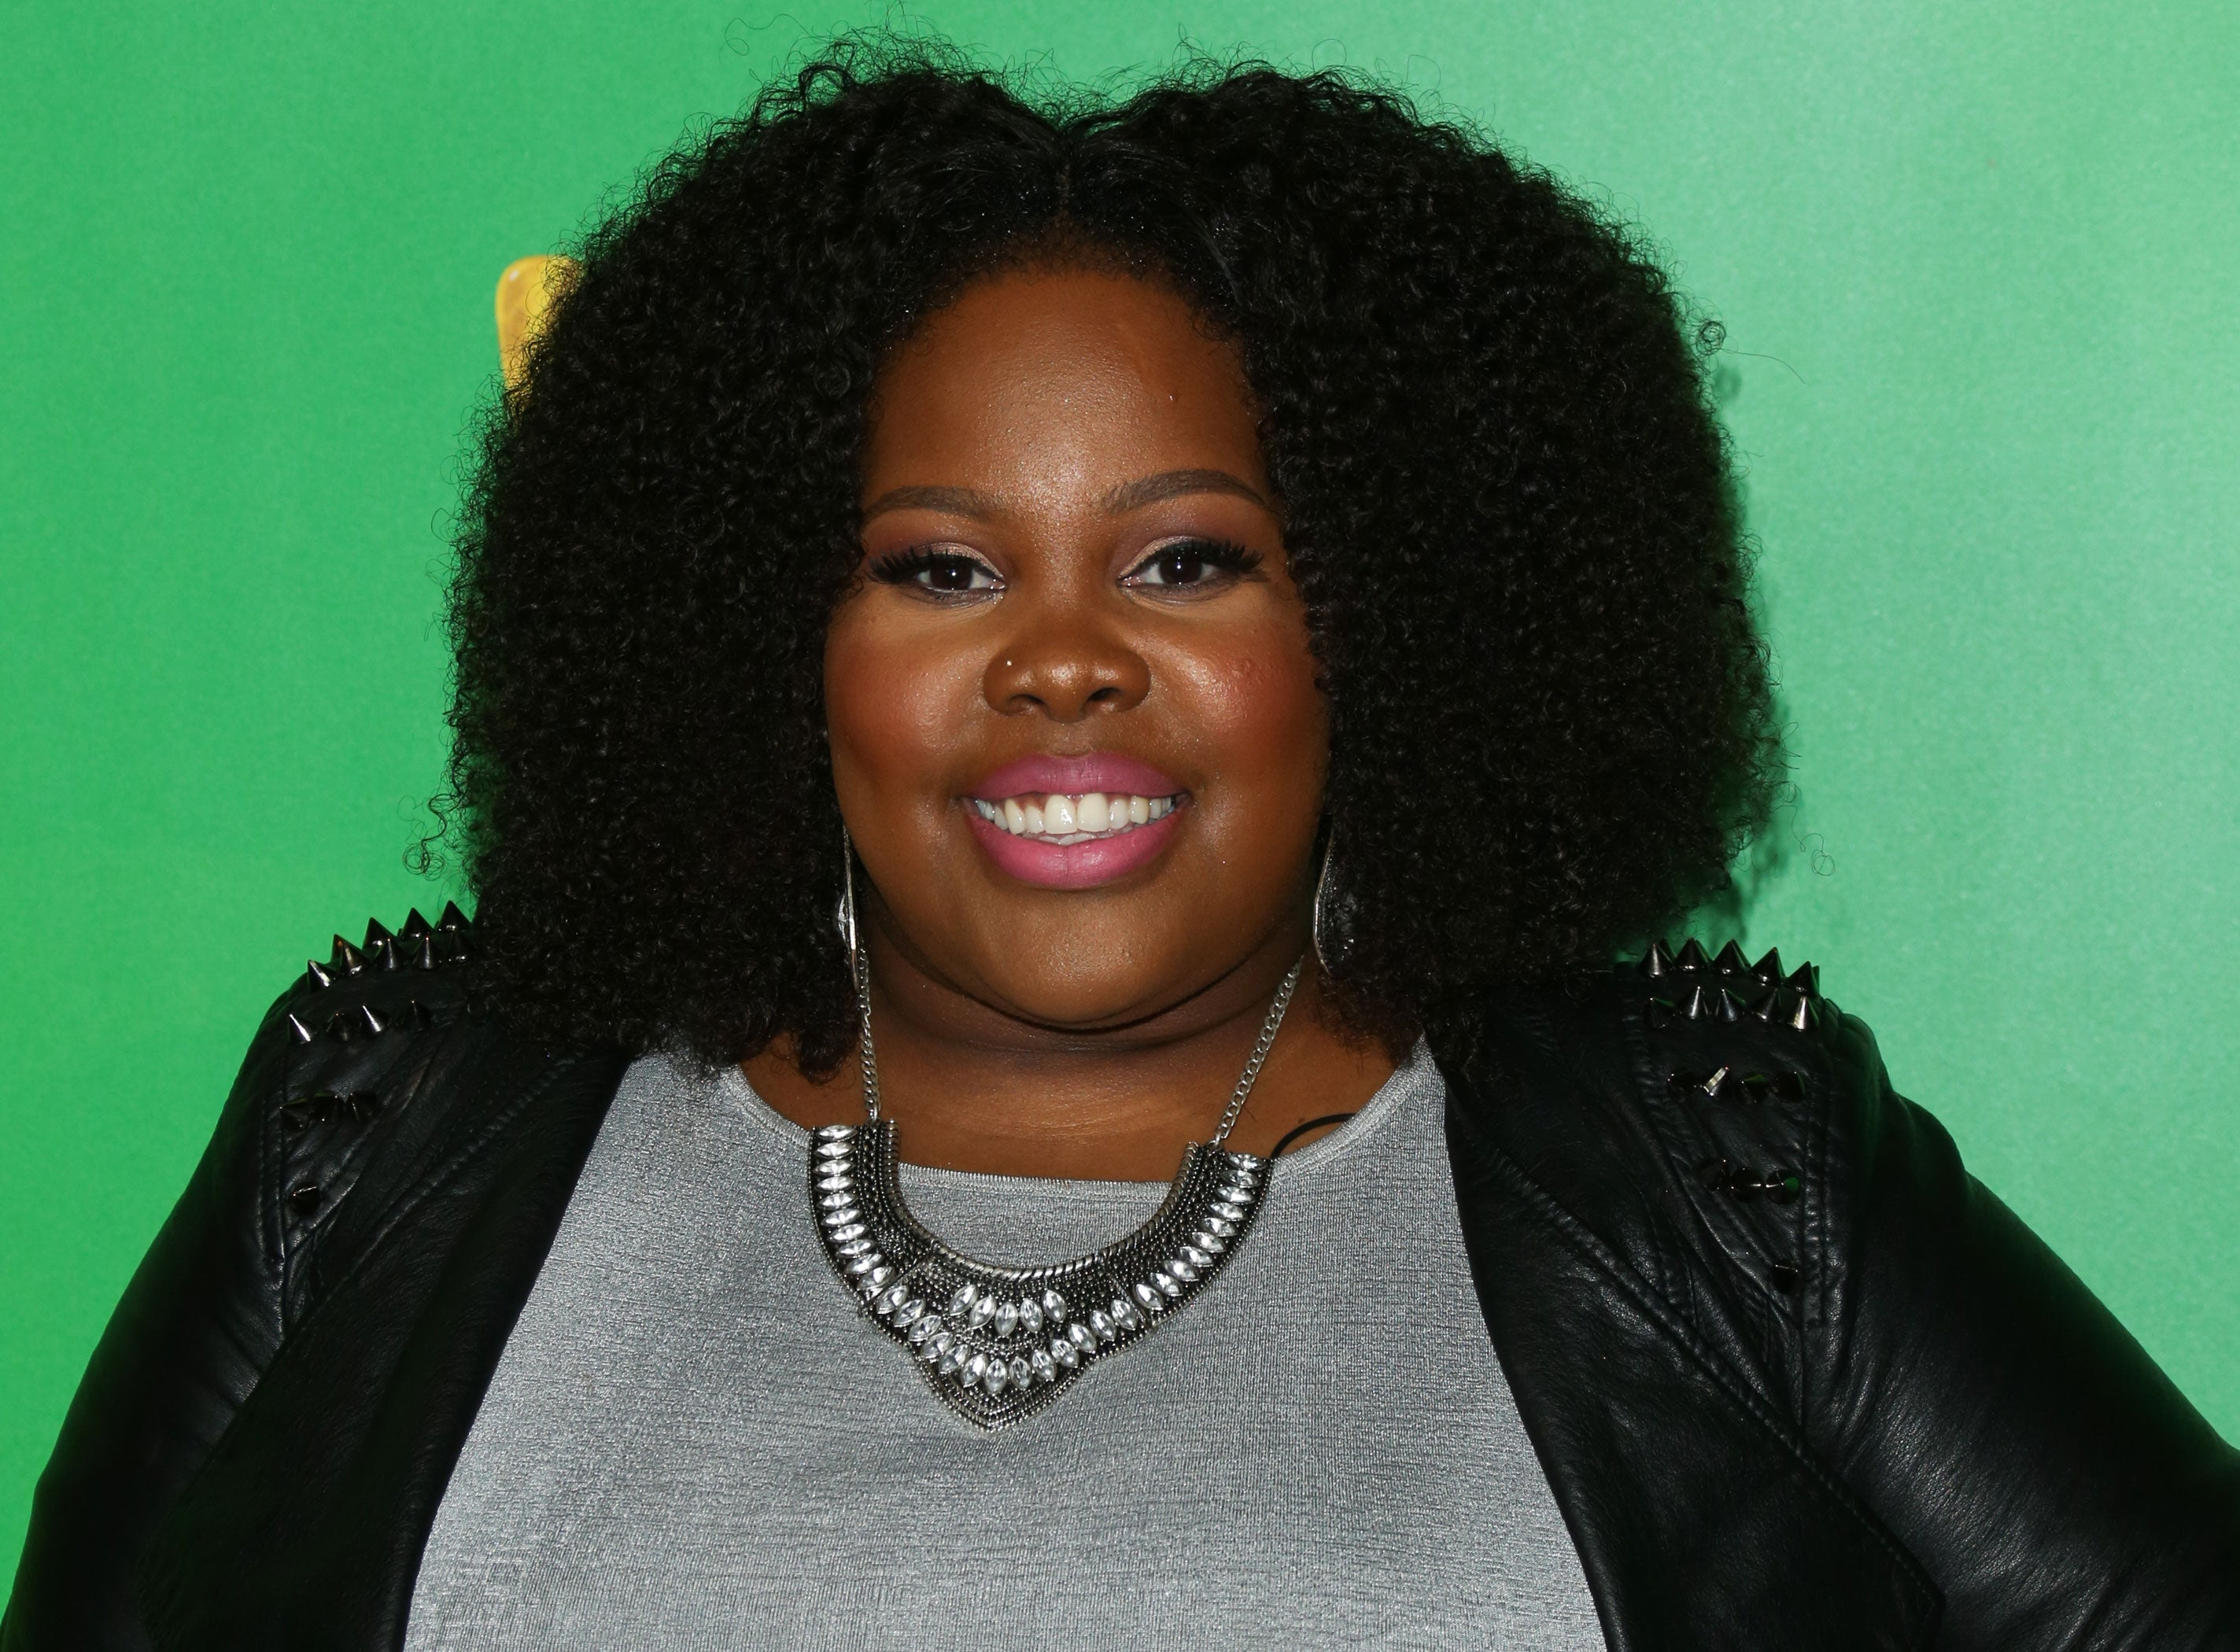 Amber Riley's Beautiful Afro and Killer Curves Are Mind-Blowing